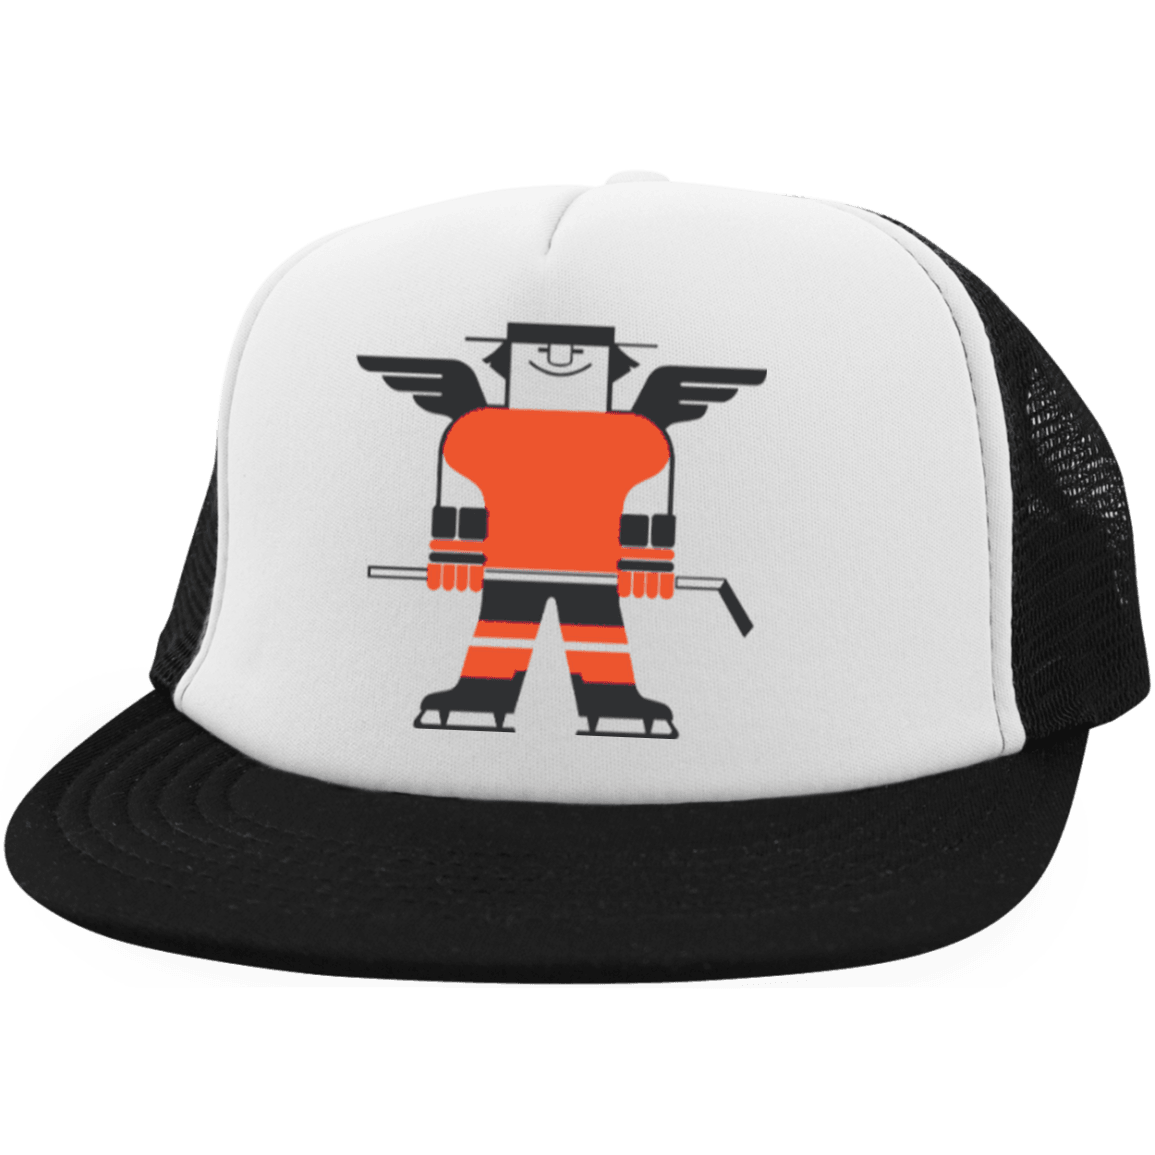 Freddie Flyer Embroidered Trucker Hat with Snapback - Generation T 3ef440d1a26